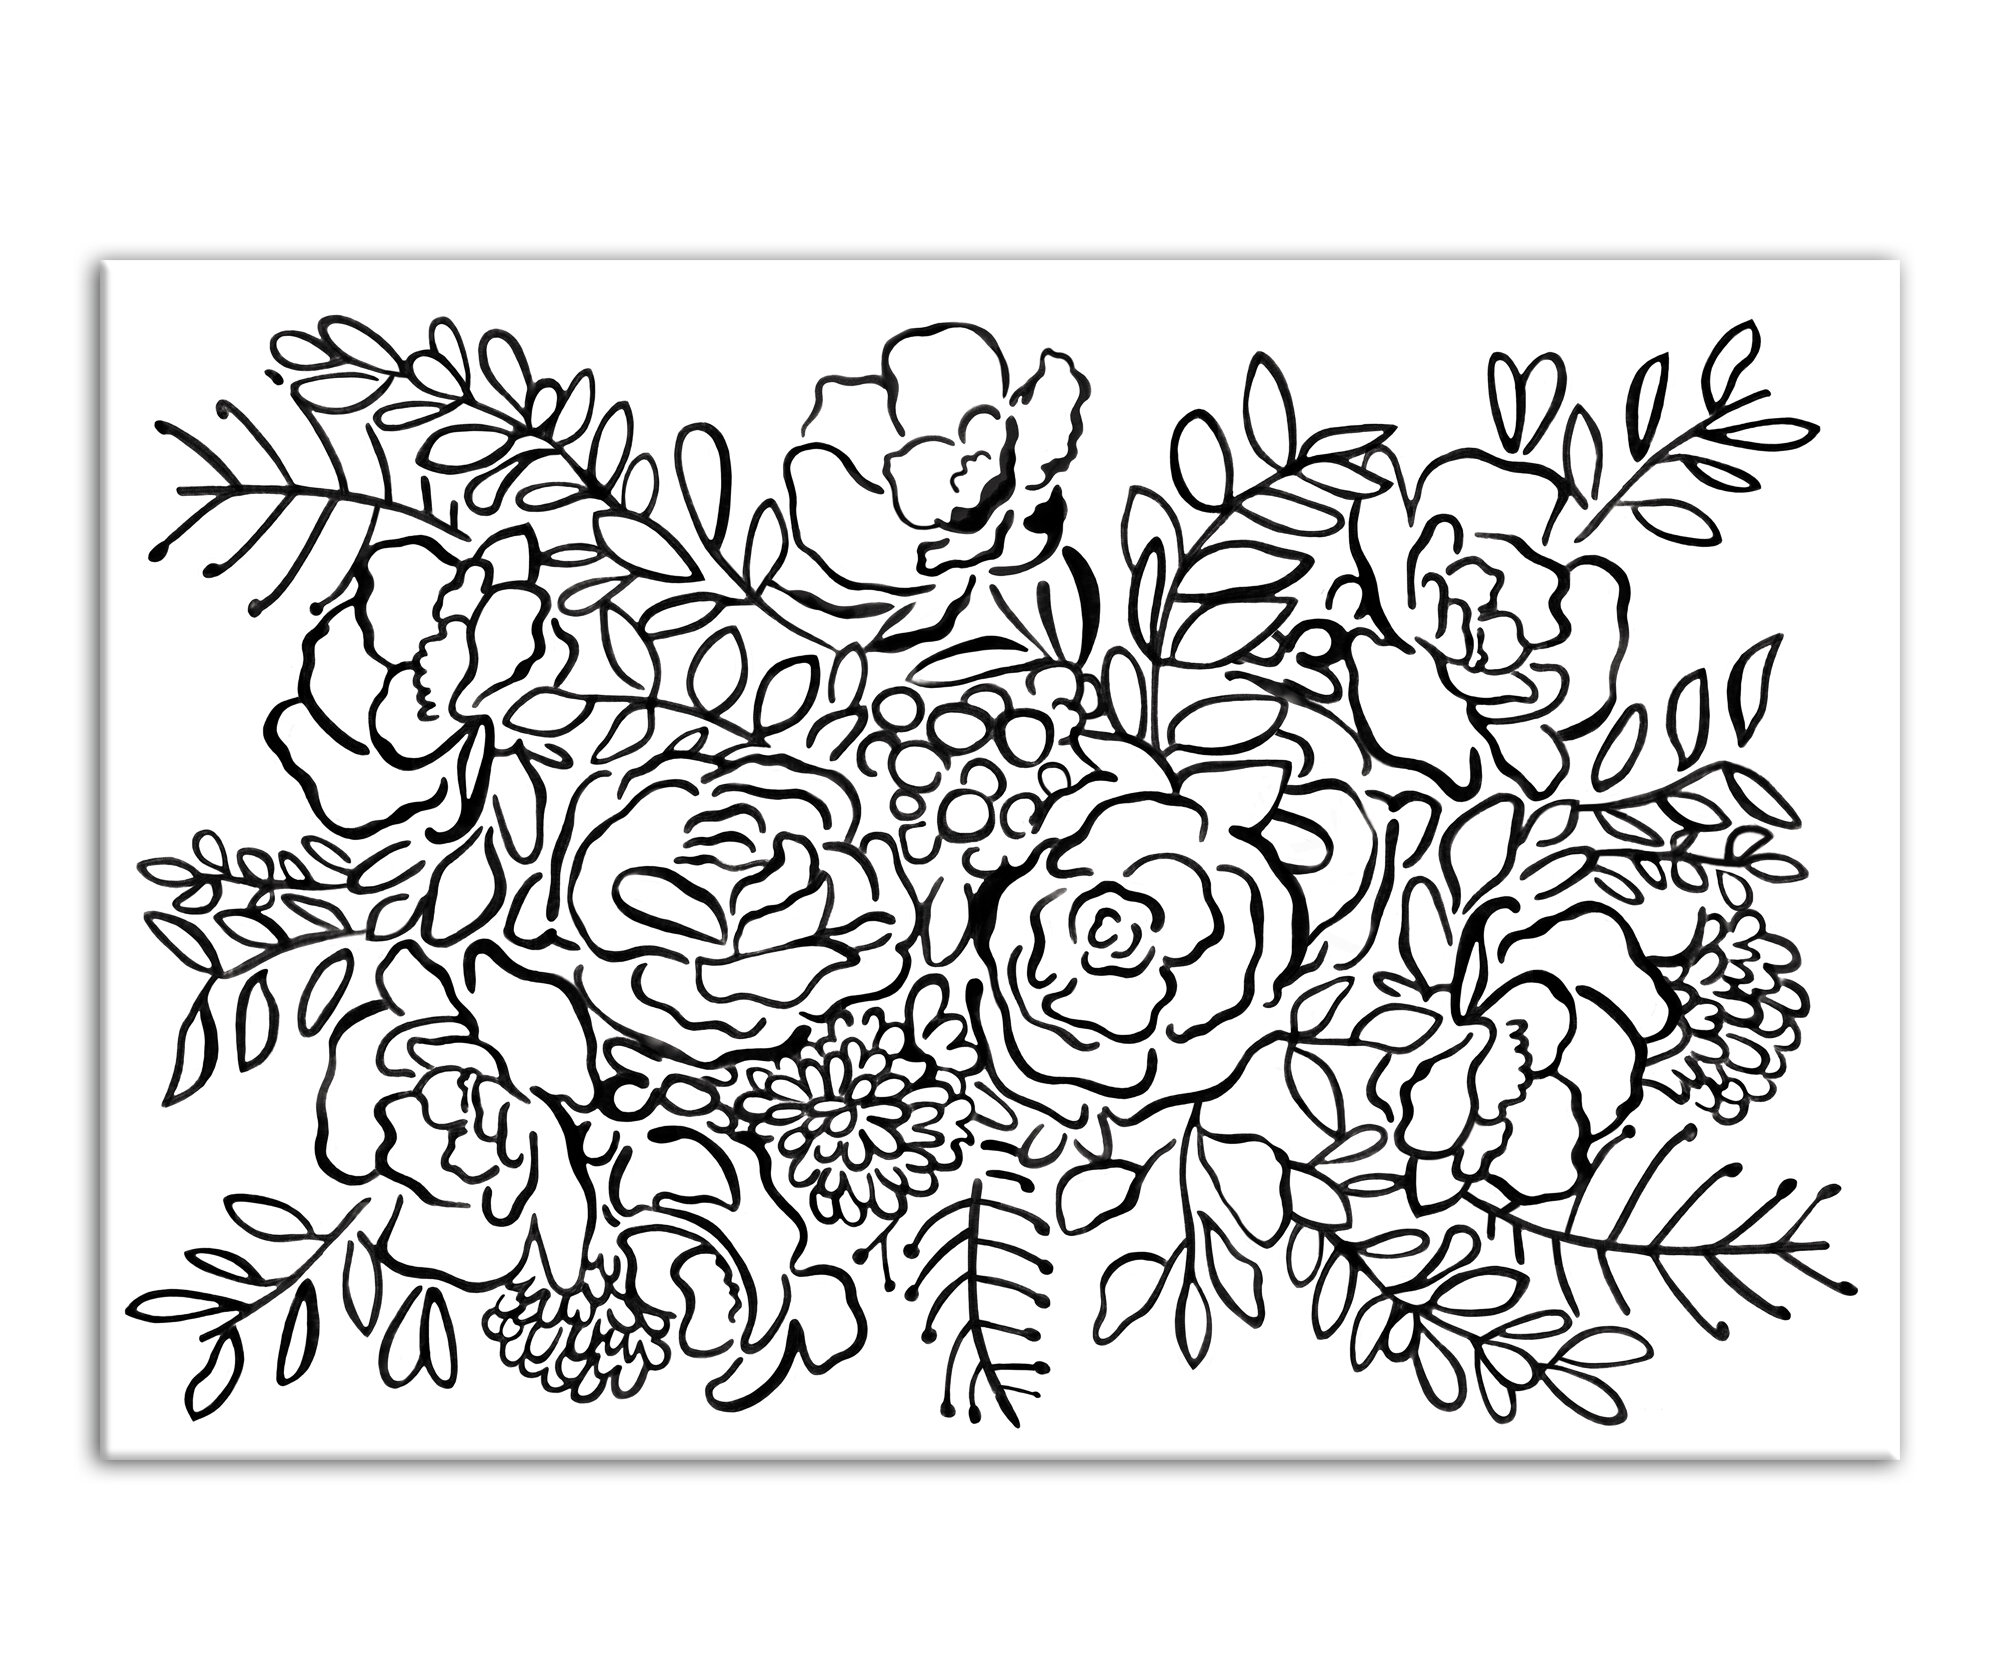 bungalow rose rose bush sketch drawing print on wrapped canvas Chocolate Front Door bungalow rose rose bush sketch drawing print on wrapped canvas wayfair